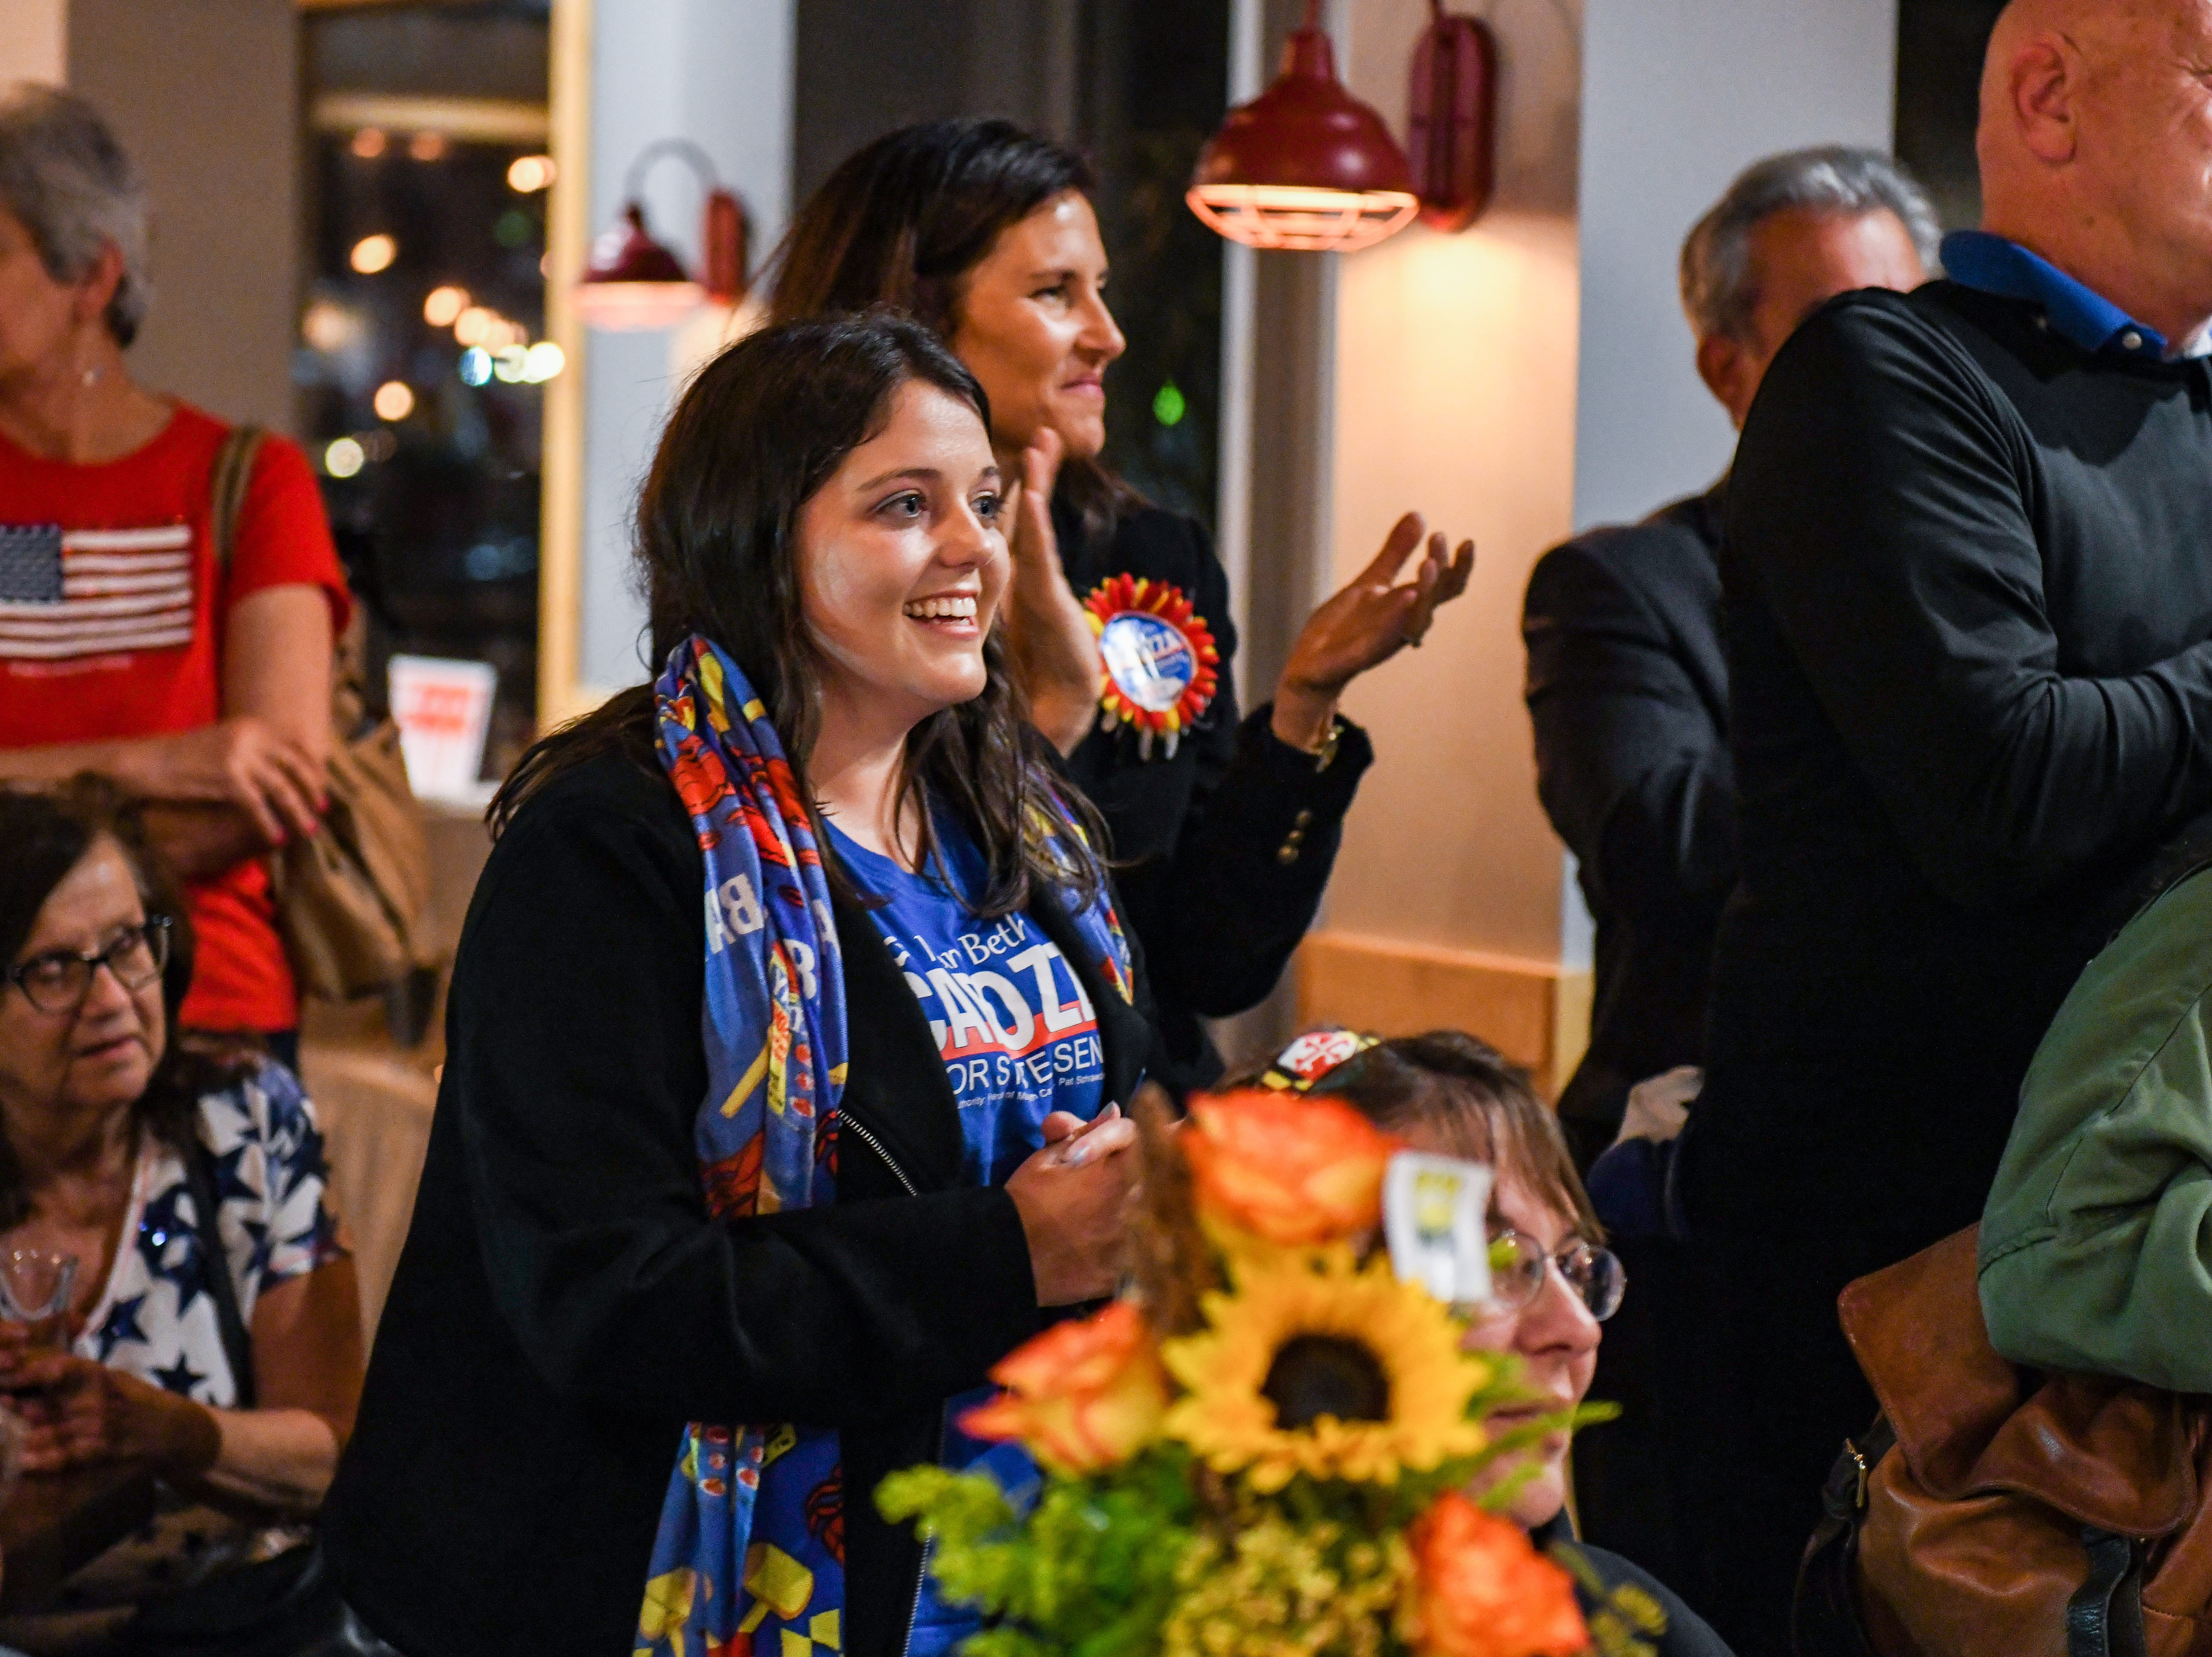 Campaign aide Melissa Brown cheers as Republican Mary Beth Carozza speaks at her Ocean City watch party shortly after she was elected the new Maryland state senator in District 38 on Tuesday, Nov 6, 2018.